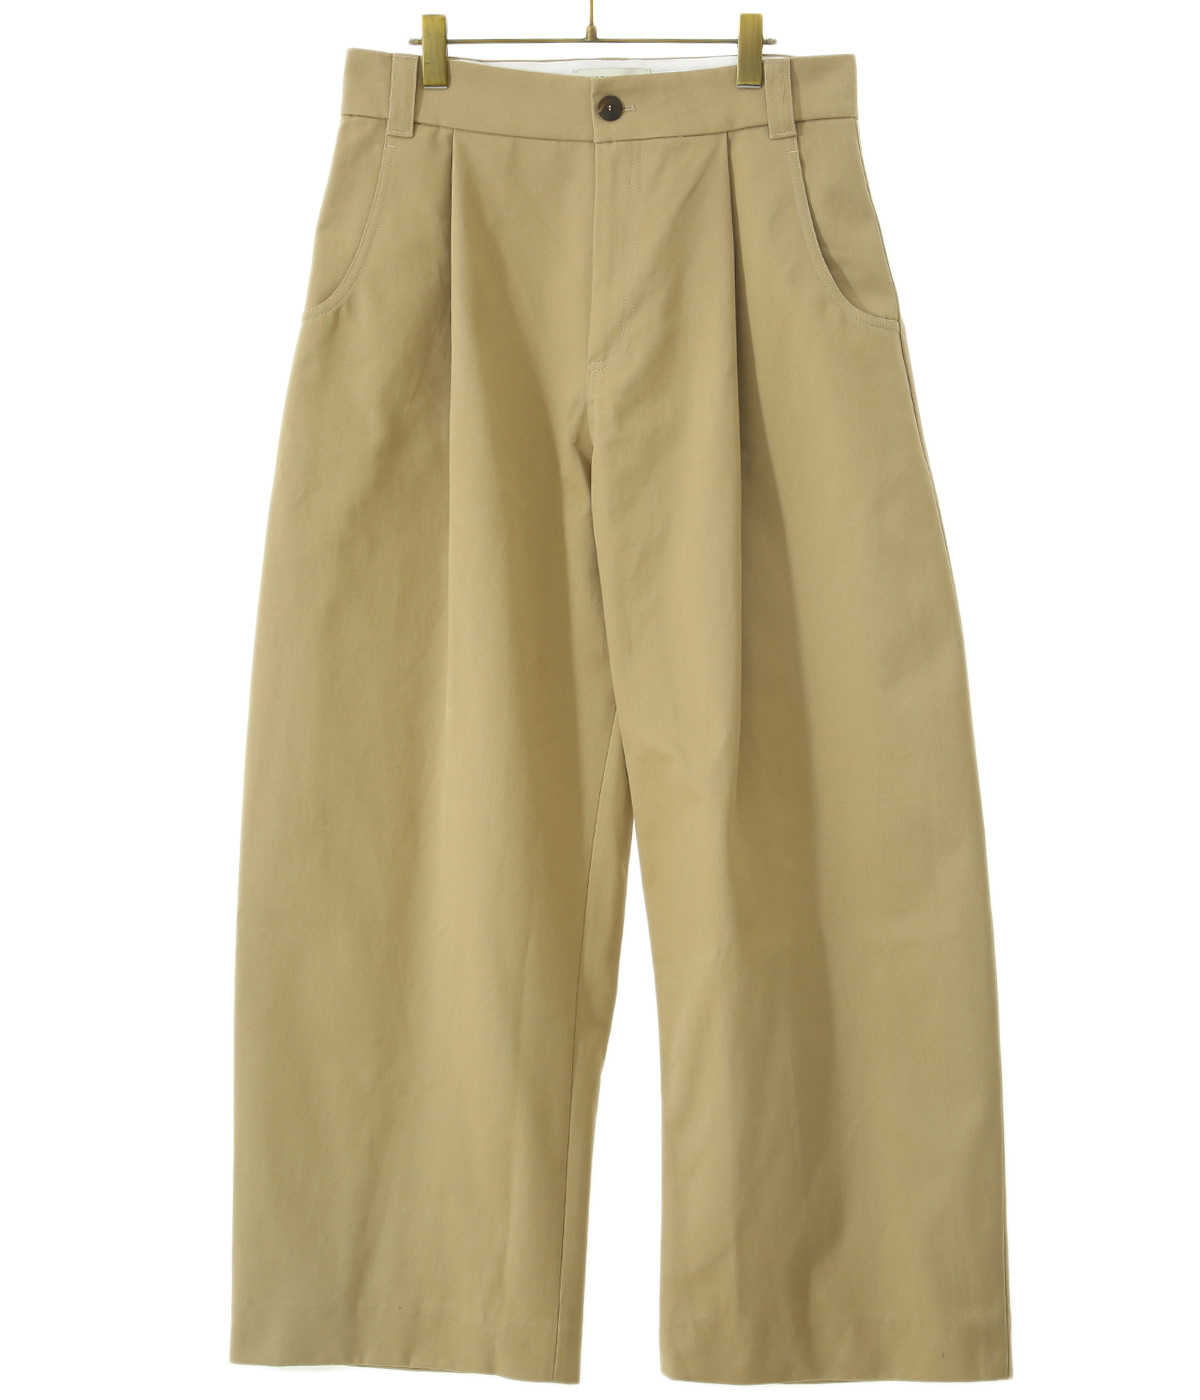 BEN PEACHED COTTON TWILL VOLUME PLEAT PANTS